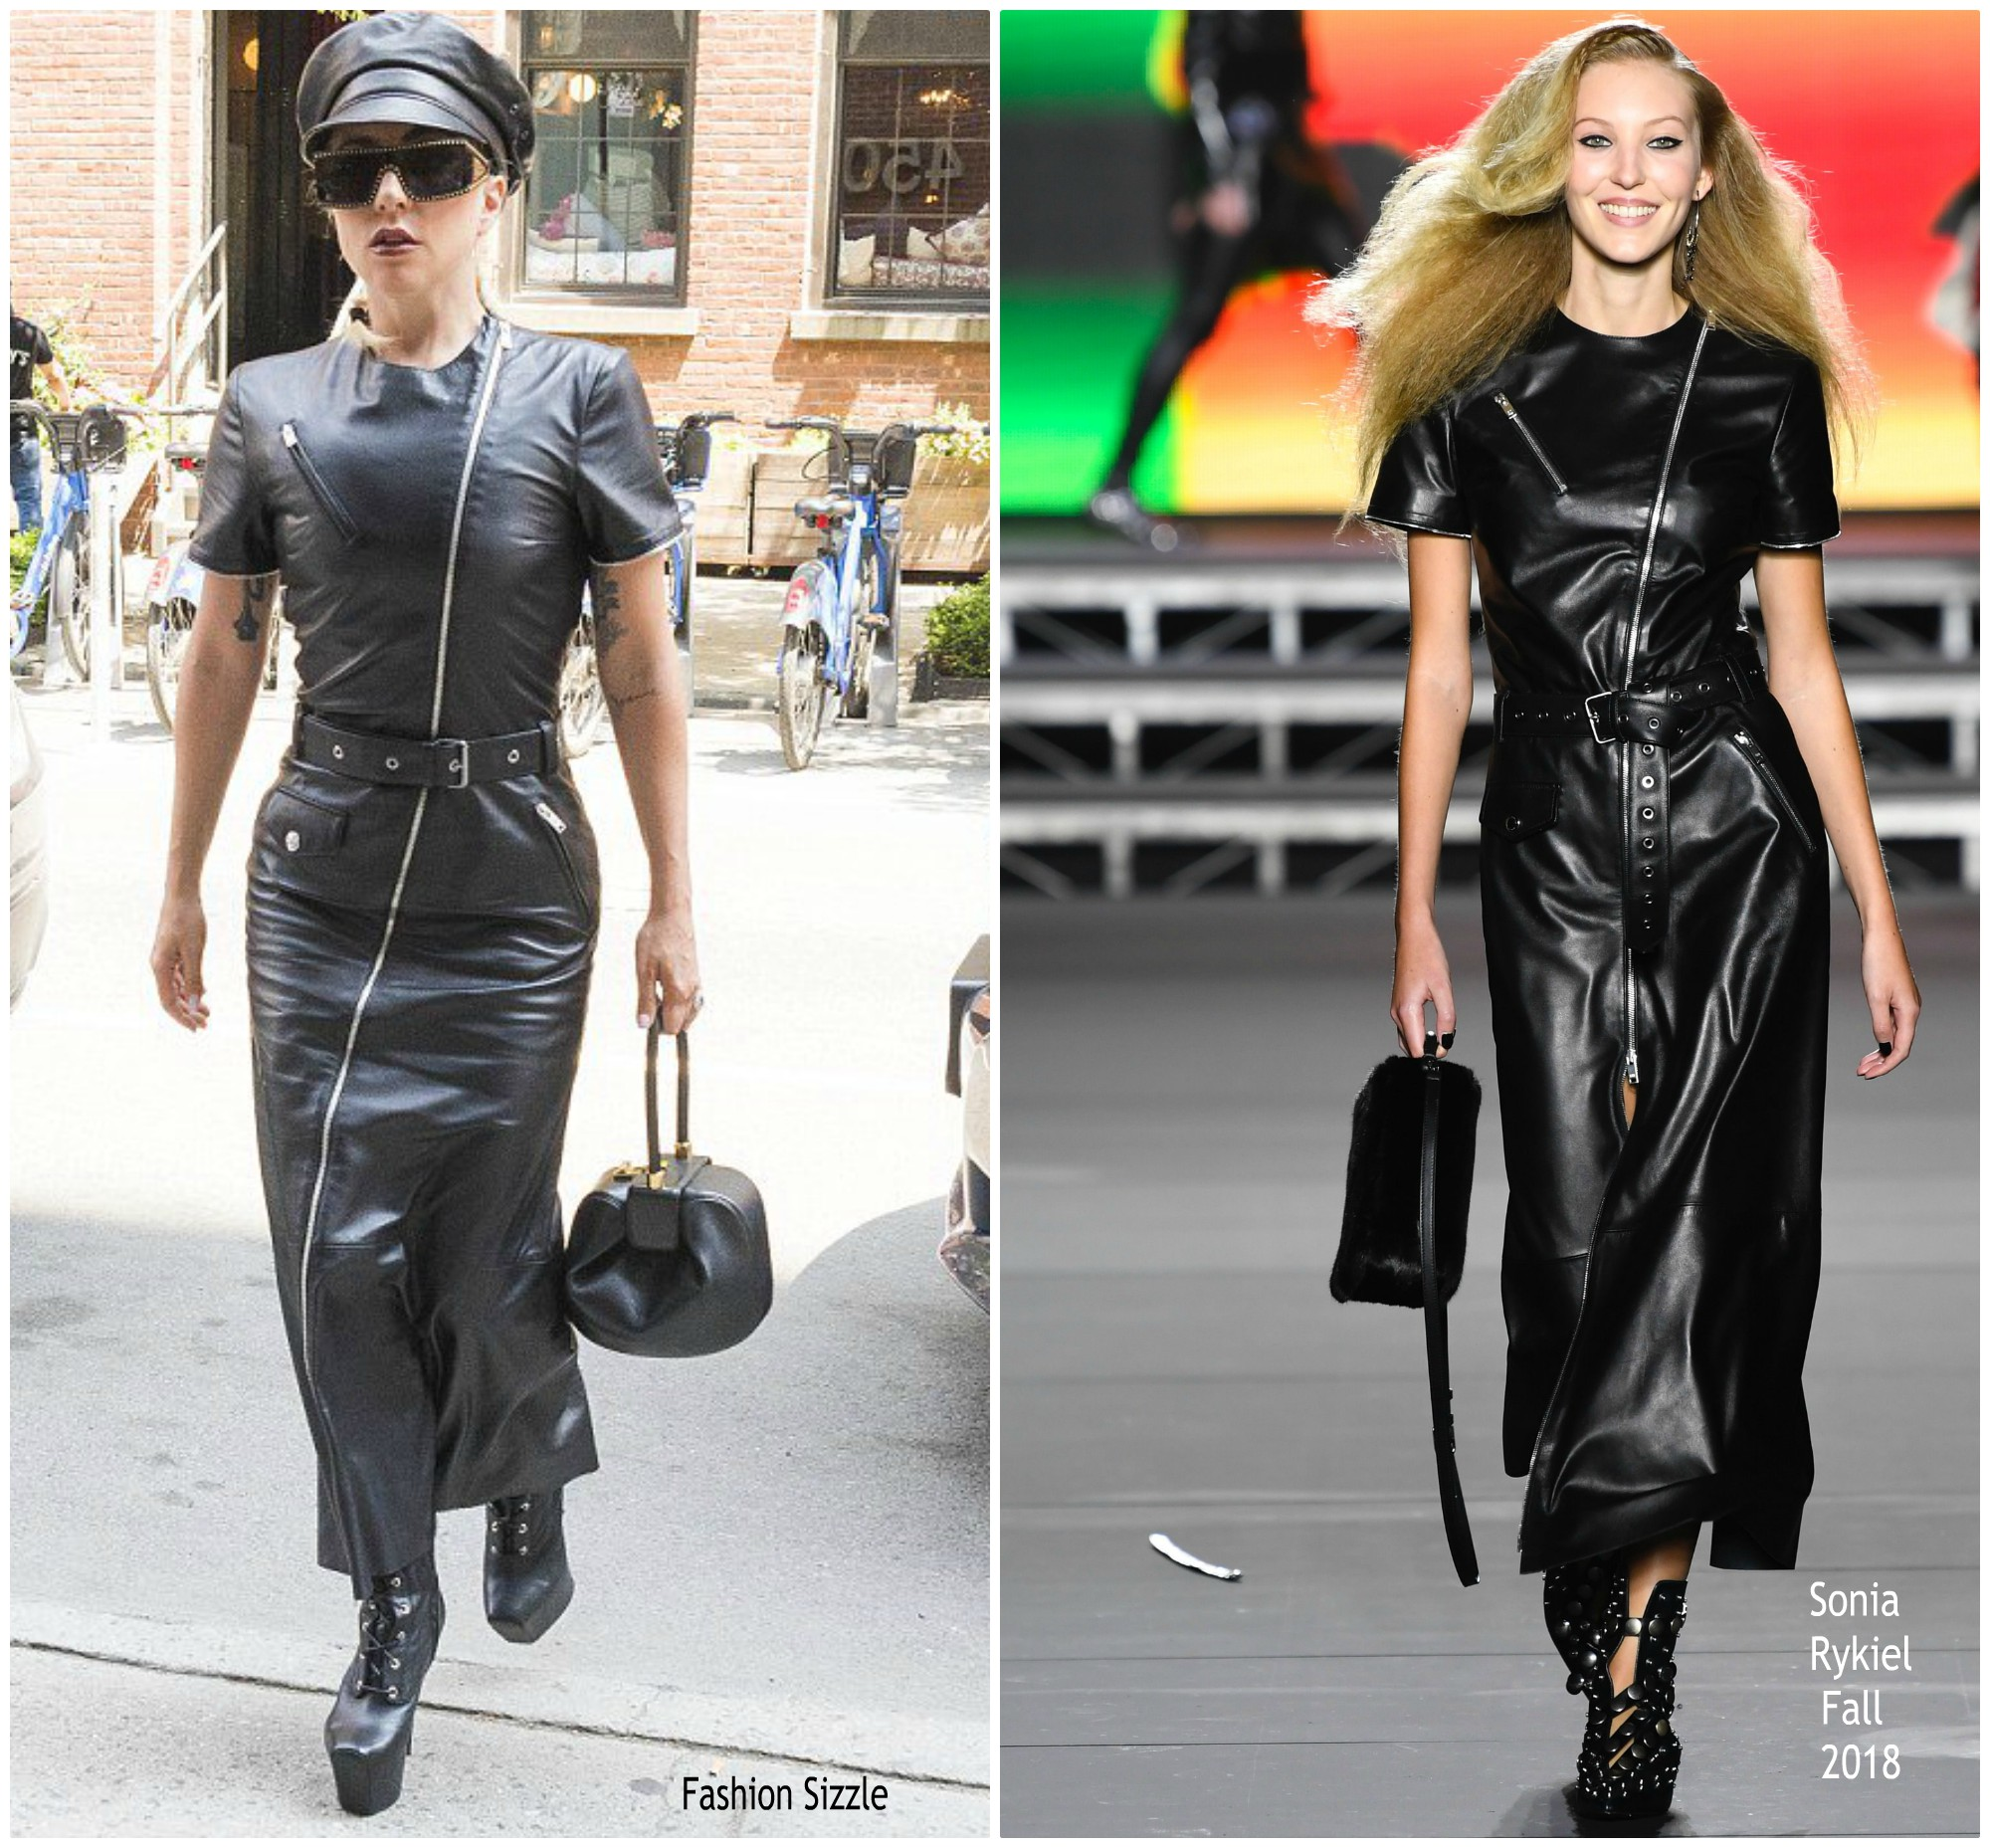 d99f9c5cd5 Lady Gaga In Sonia Rykiel – Out In New York. Blog CELEBRITY STREETSTYLE  CELEBRITY STYLE Fashion ...